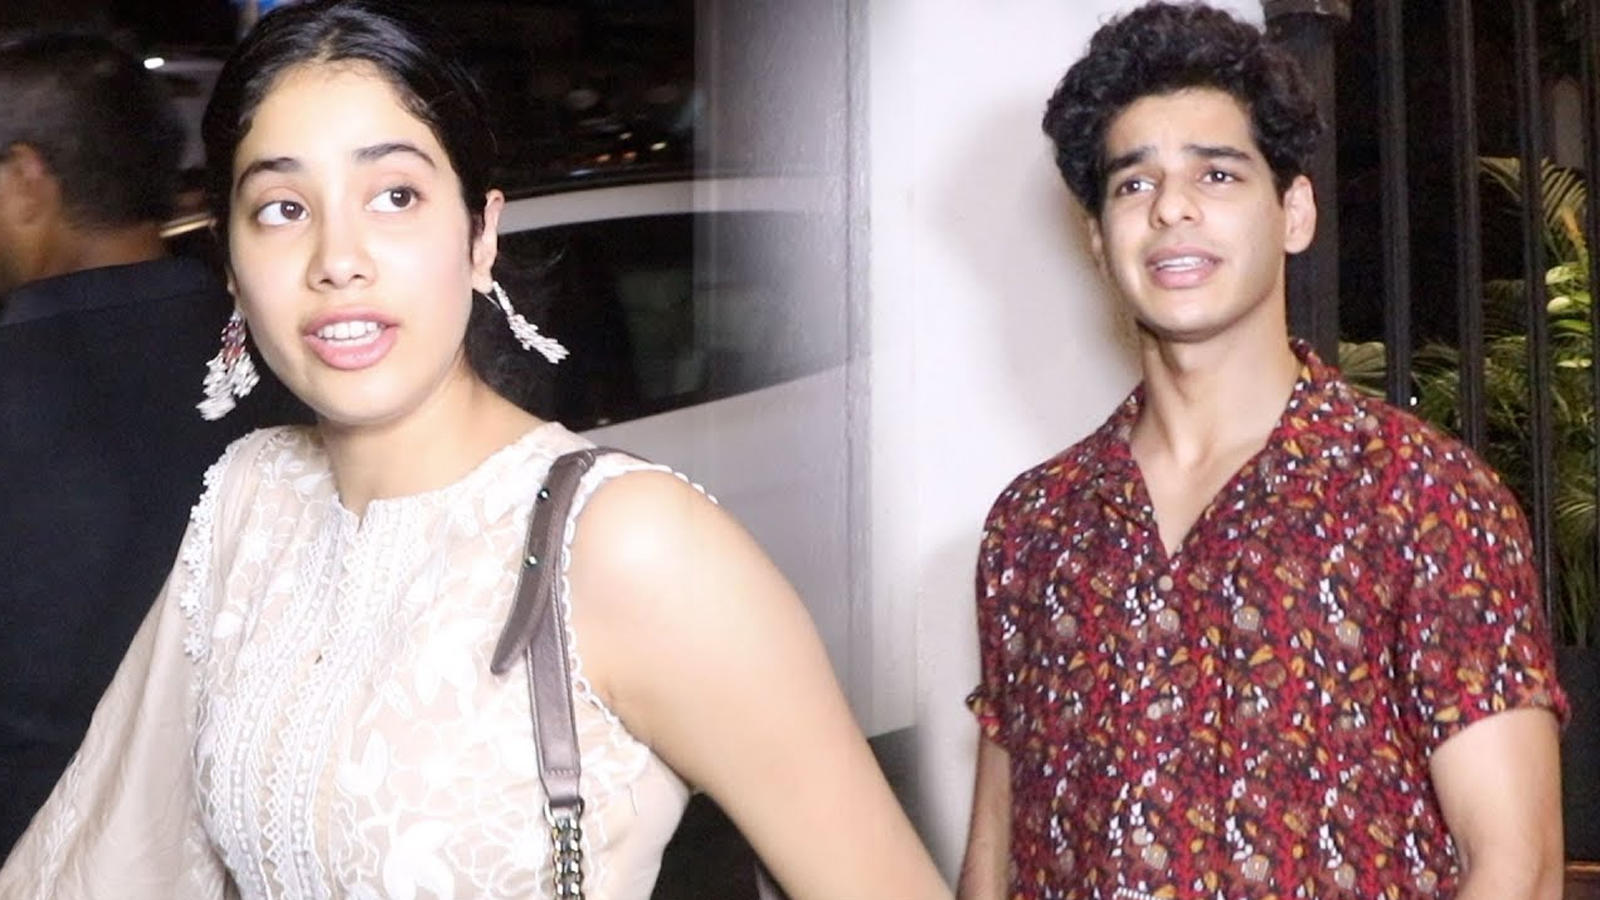 Janhvi Kapoor and Ishaan Khatter refuse to pose together